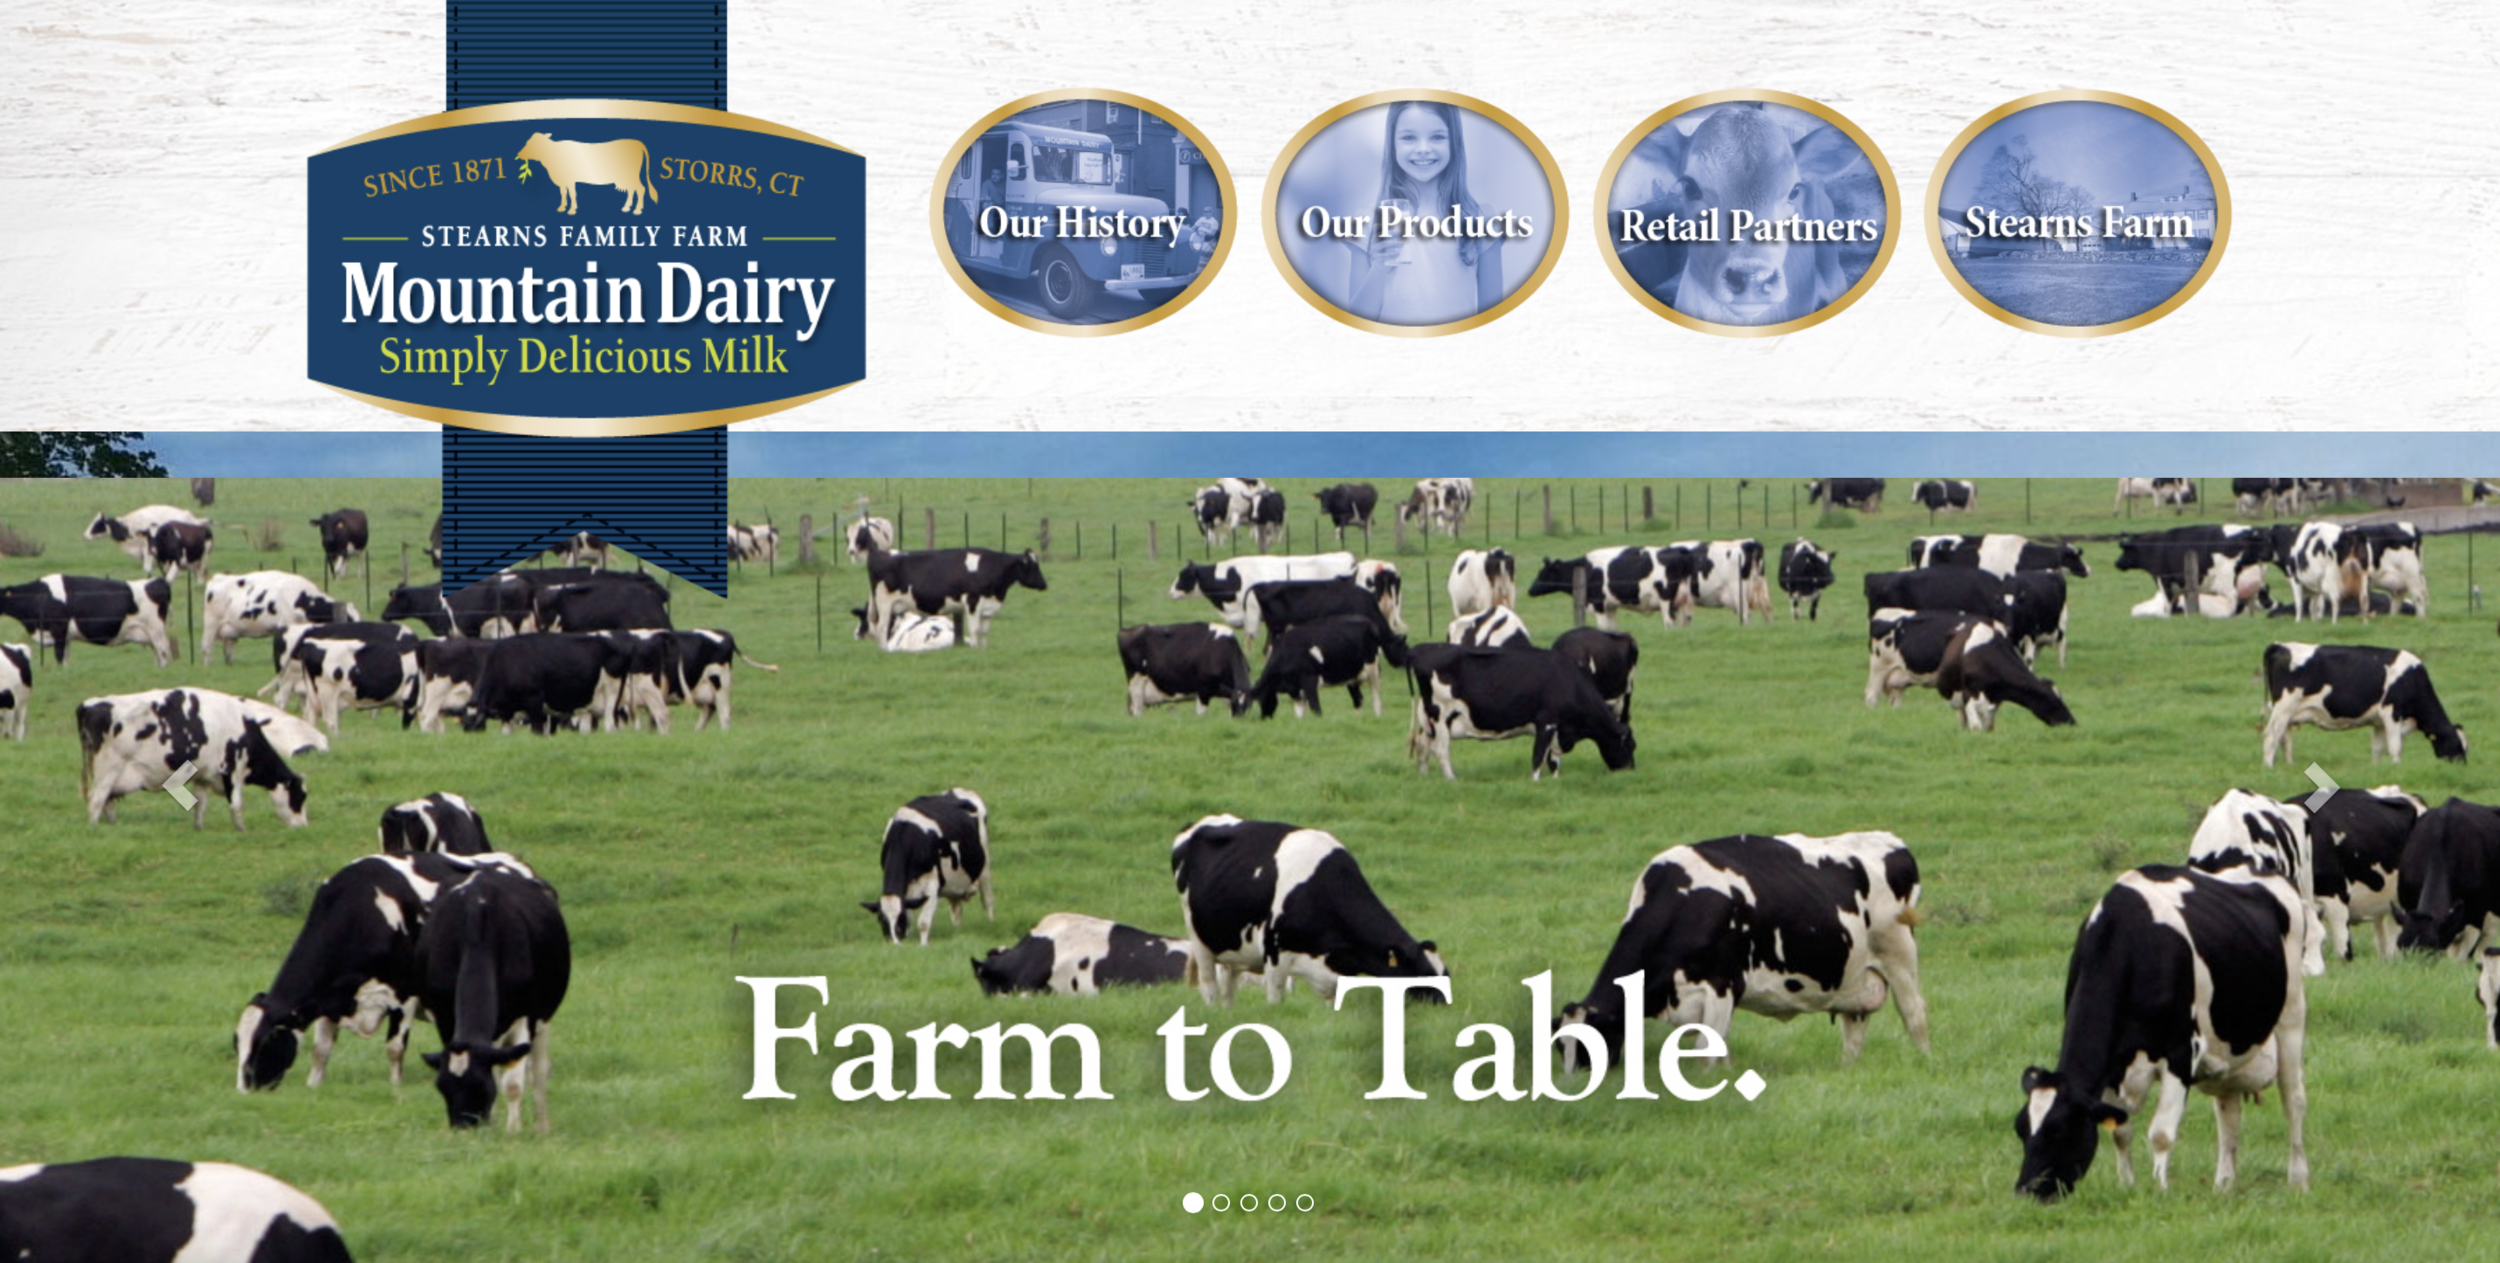 An additional 740 acres of Stearns Farm have been protected and will remain in agriculture after prior official protection. ( Stearns Family Farm Website )